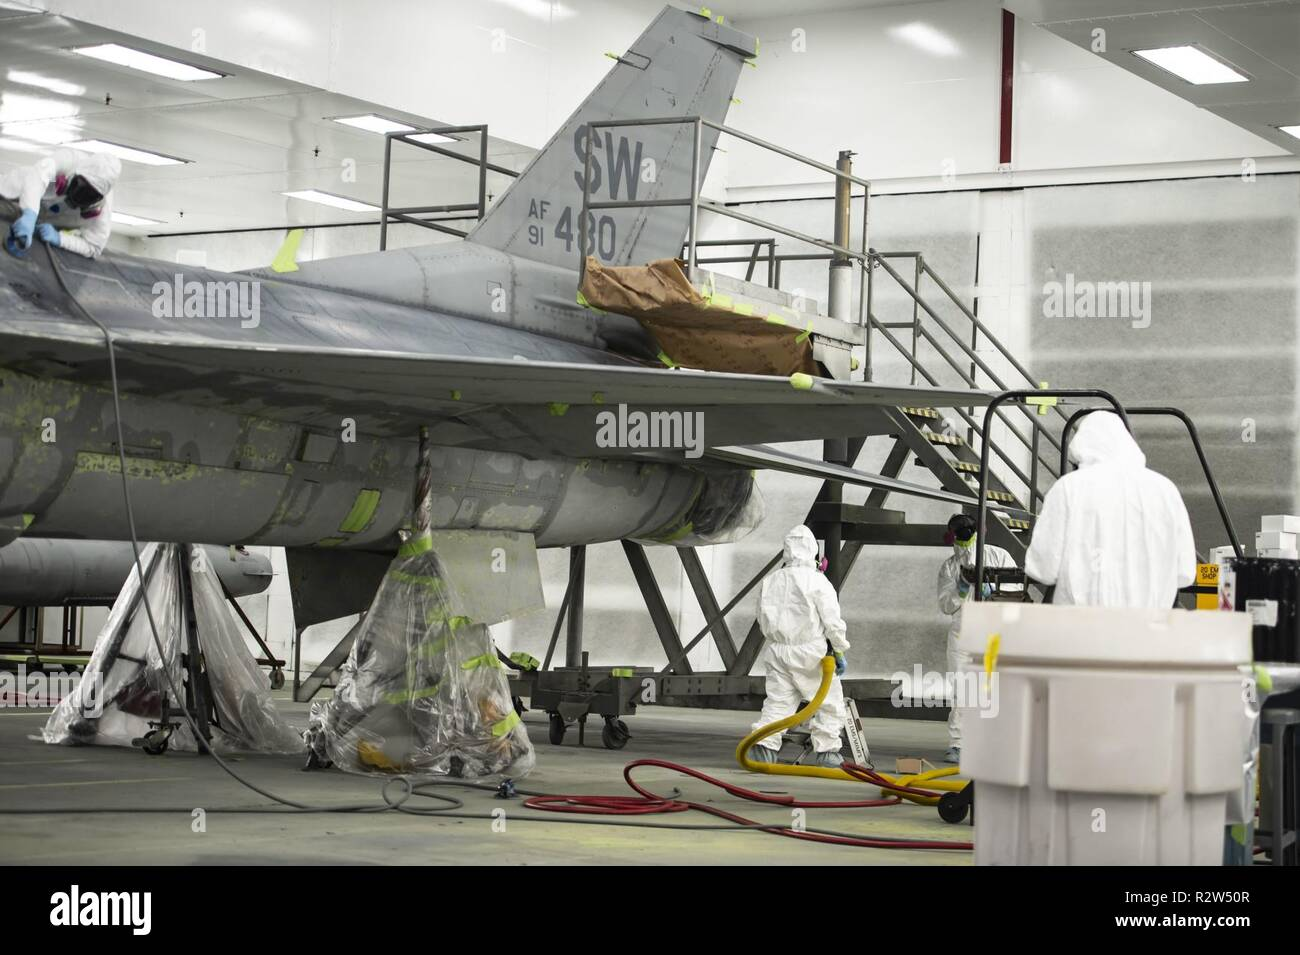 U.S. Airmen assigned to the 20th Equipment Maintenance Squadron corrosion control paint barn, work on an F-16CM Fighting Falcon at Shaw Air Force Base, S.C., Nov. 13, 2018. The maintenance performed on the aircraft helps protect the aircraft from the elements while stateside or overseas. Stock Photo